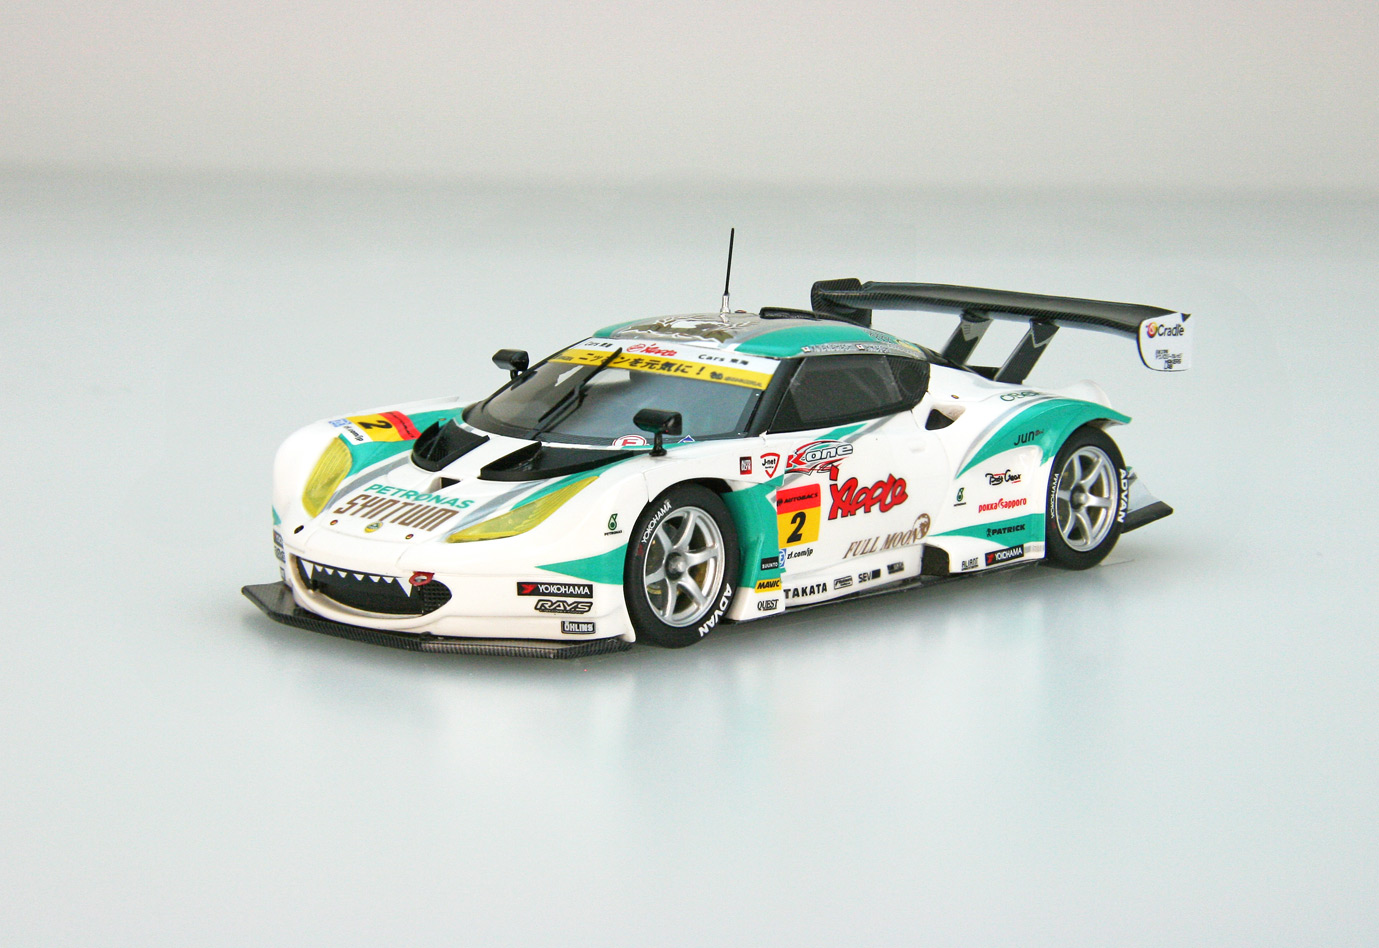 ☆予約品☆【45415】SYNTIUM Apple LOTUS SUPER GT GT300 2016 No.2 [RESIN]